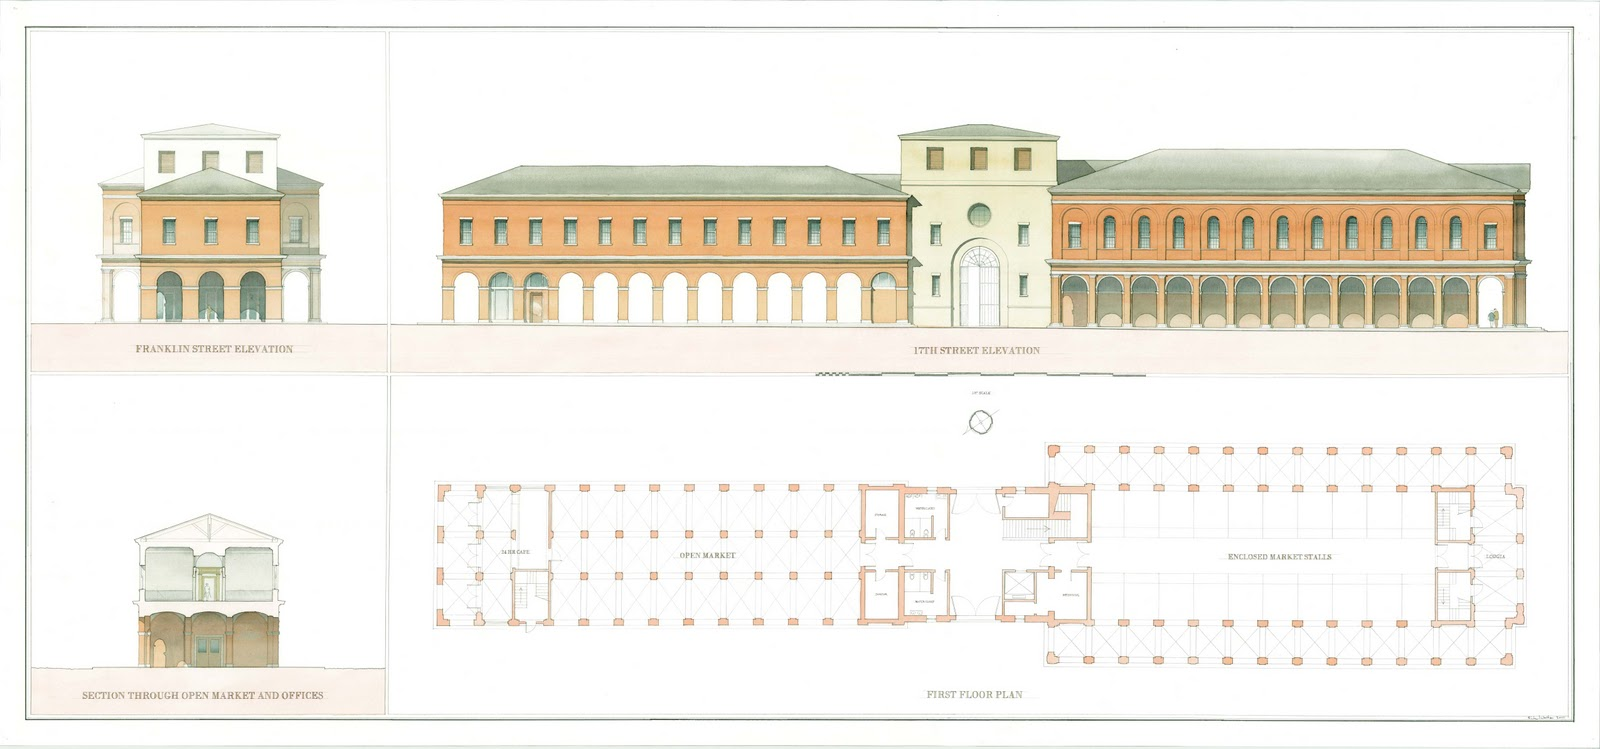 Ground floor plan and elevation of the proposed market the main street facade is toward the right